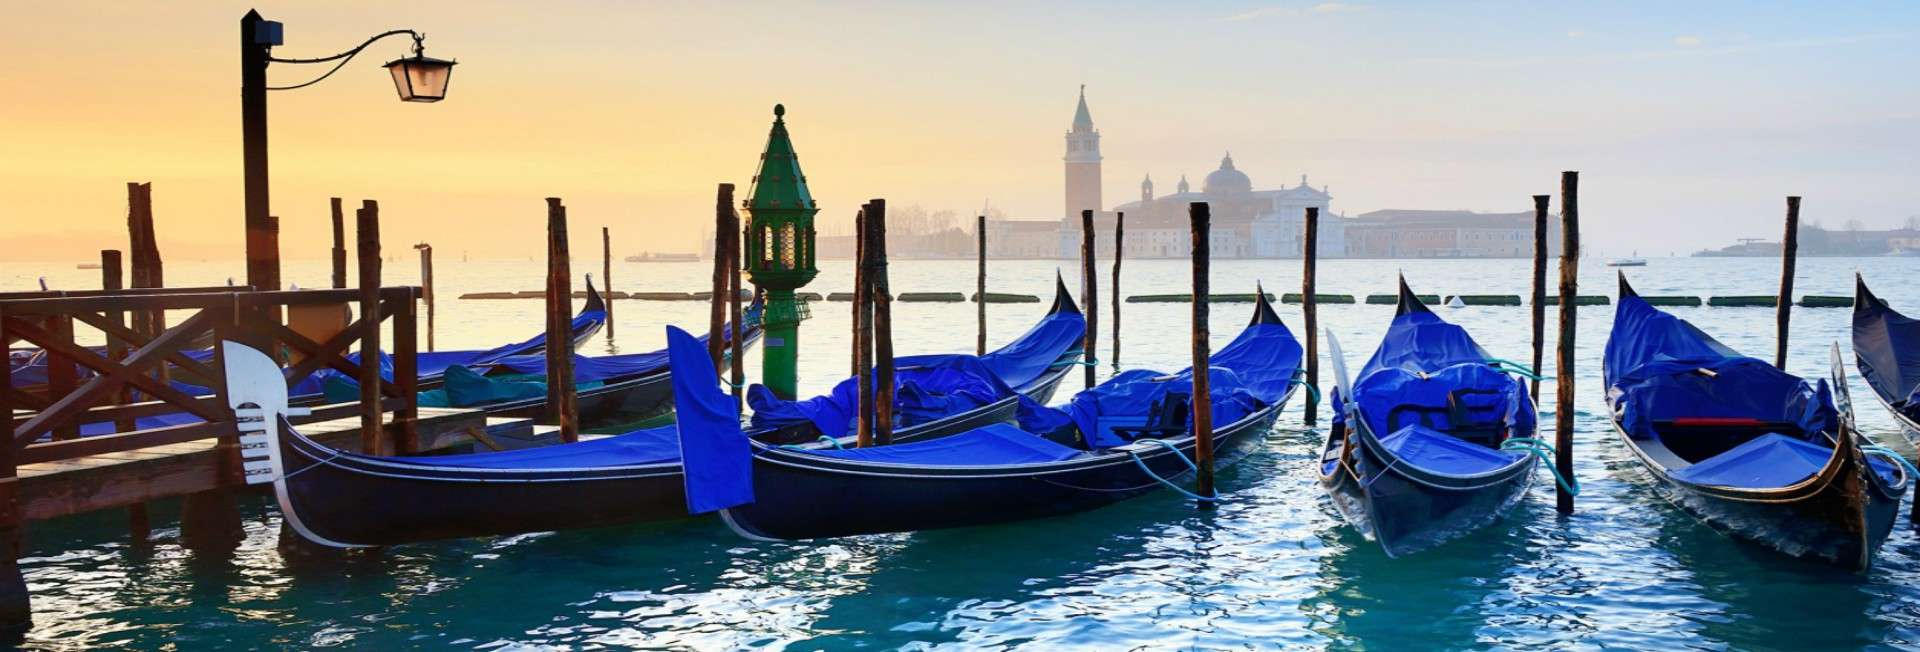 Venice, Italy, Gondolas, Bridges, St. Marks Square, Canals, Grand Canal, Hotels, Restaurants, Boutiques, Murano Glass